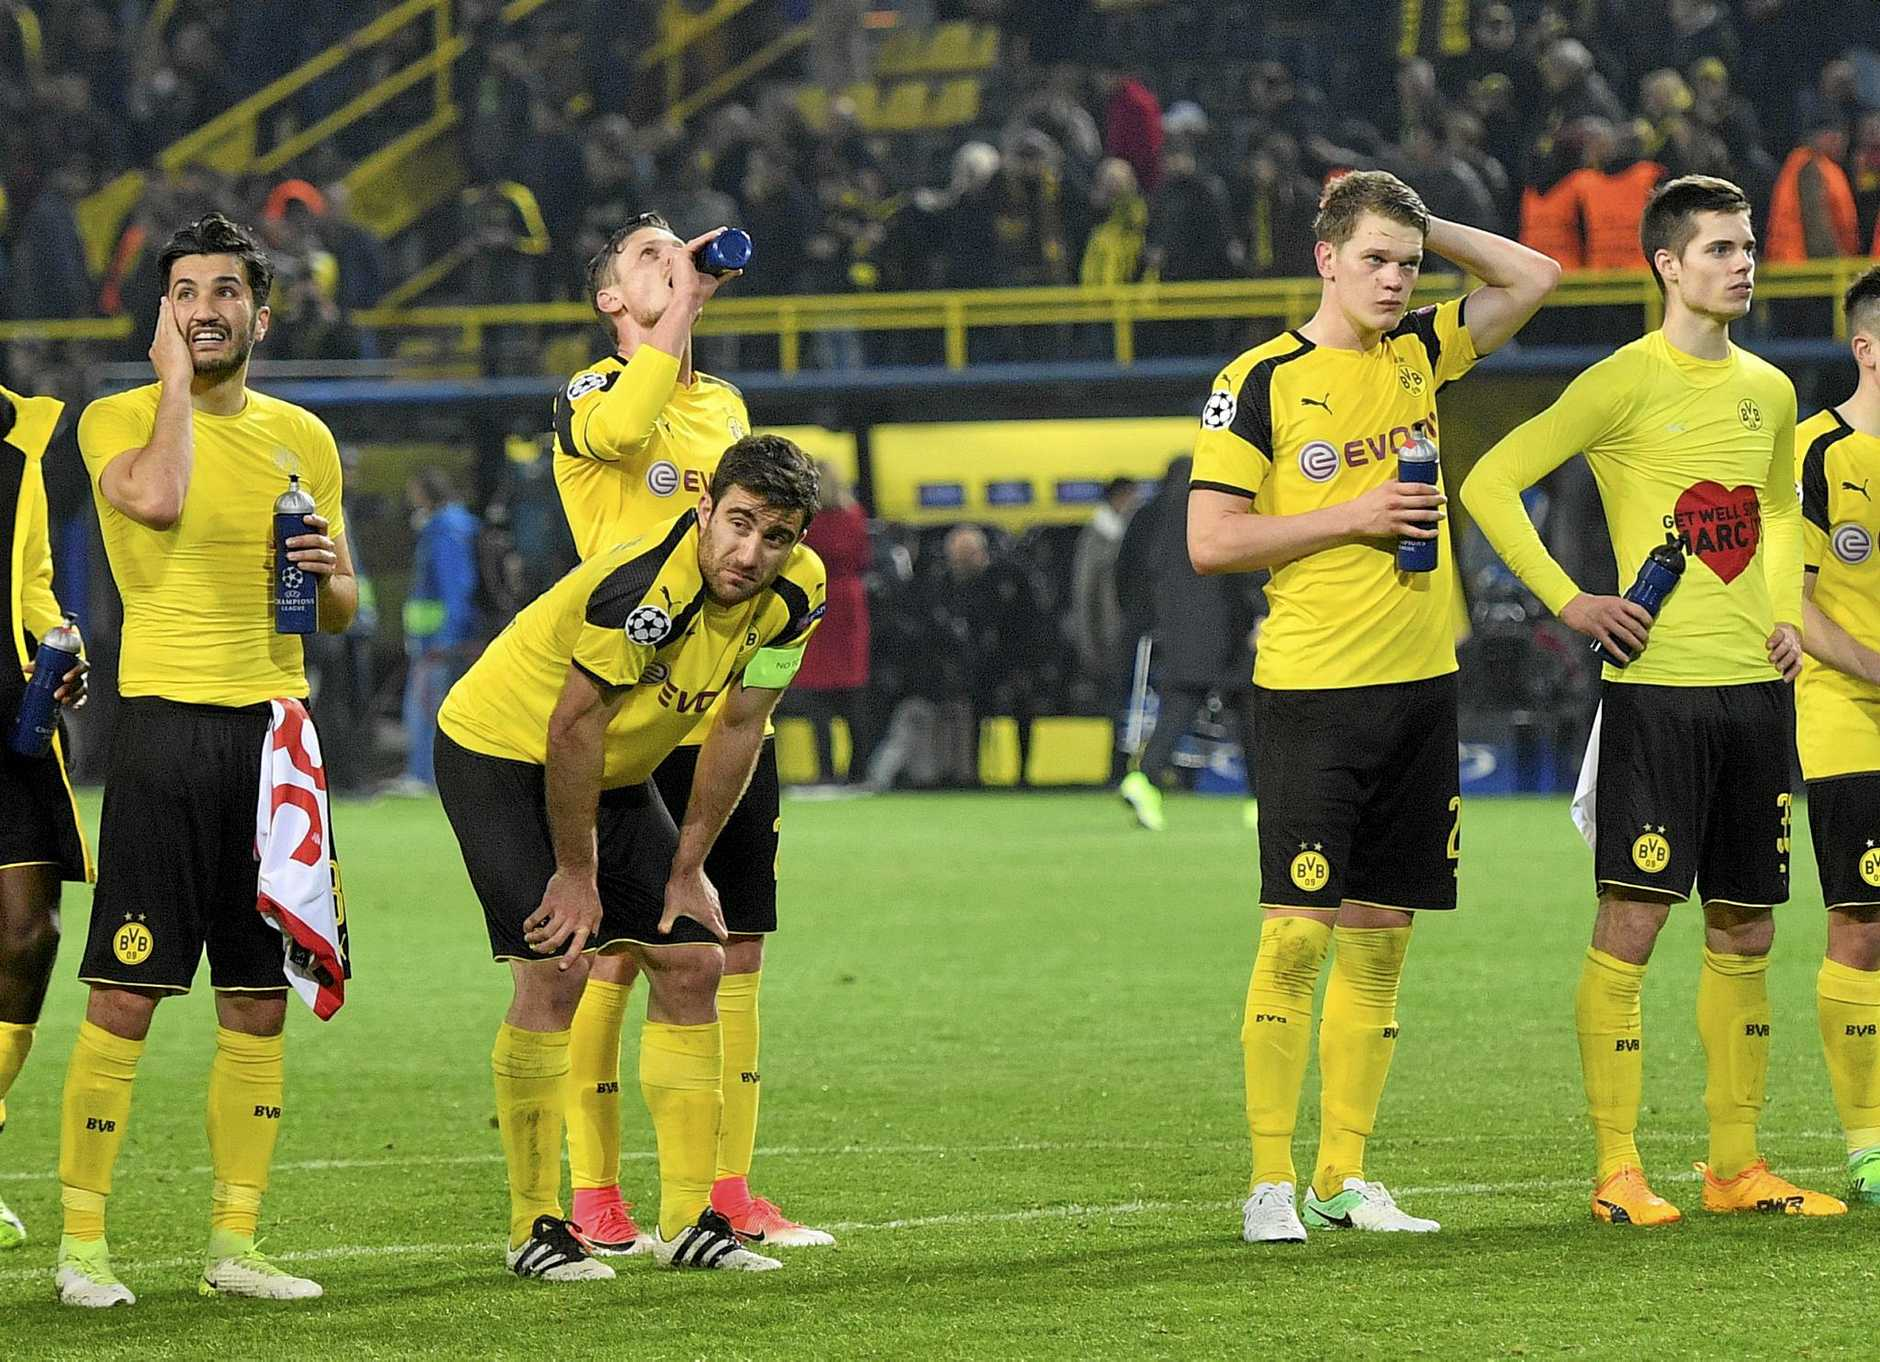 Dortmund's Nuri Sahin, Sokratis Papastathopoulos, Lukasz Piszczek, Matthias Ginter and Julian Weigl, from left, react after losing 2-3 during the Champions League quarter-final